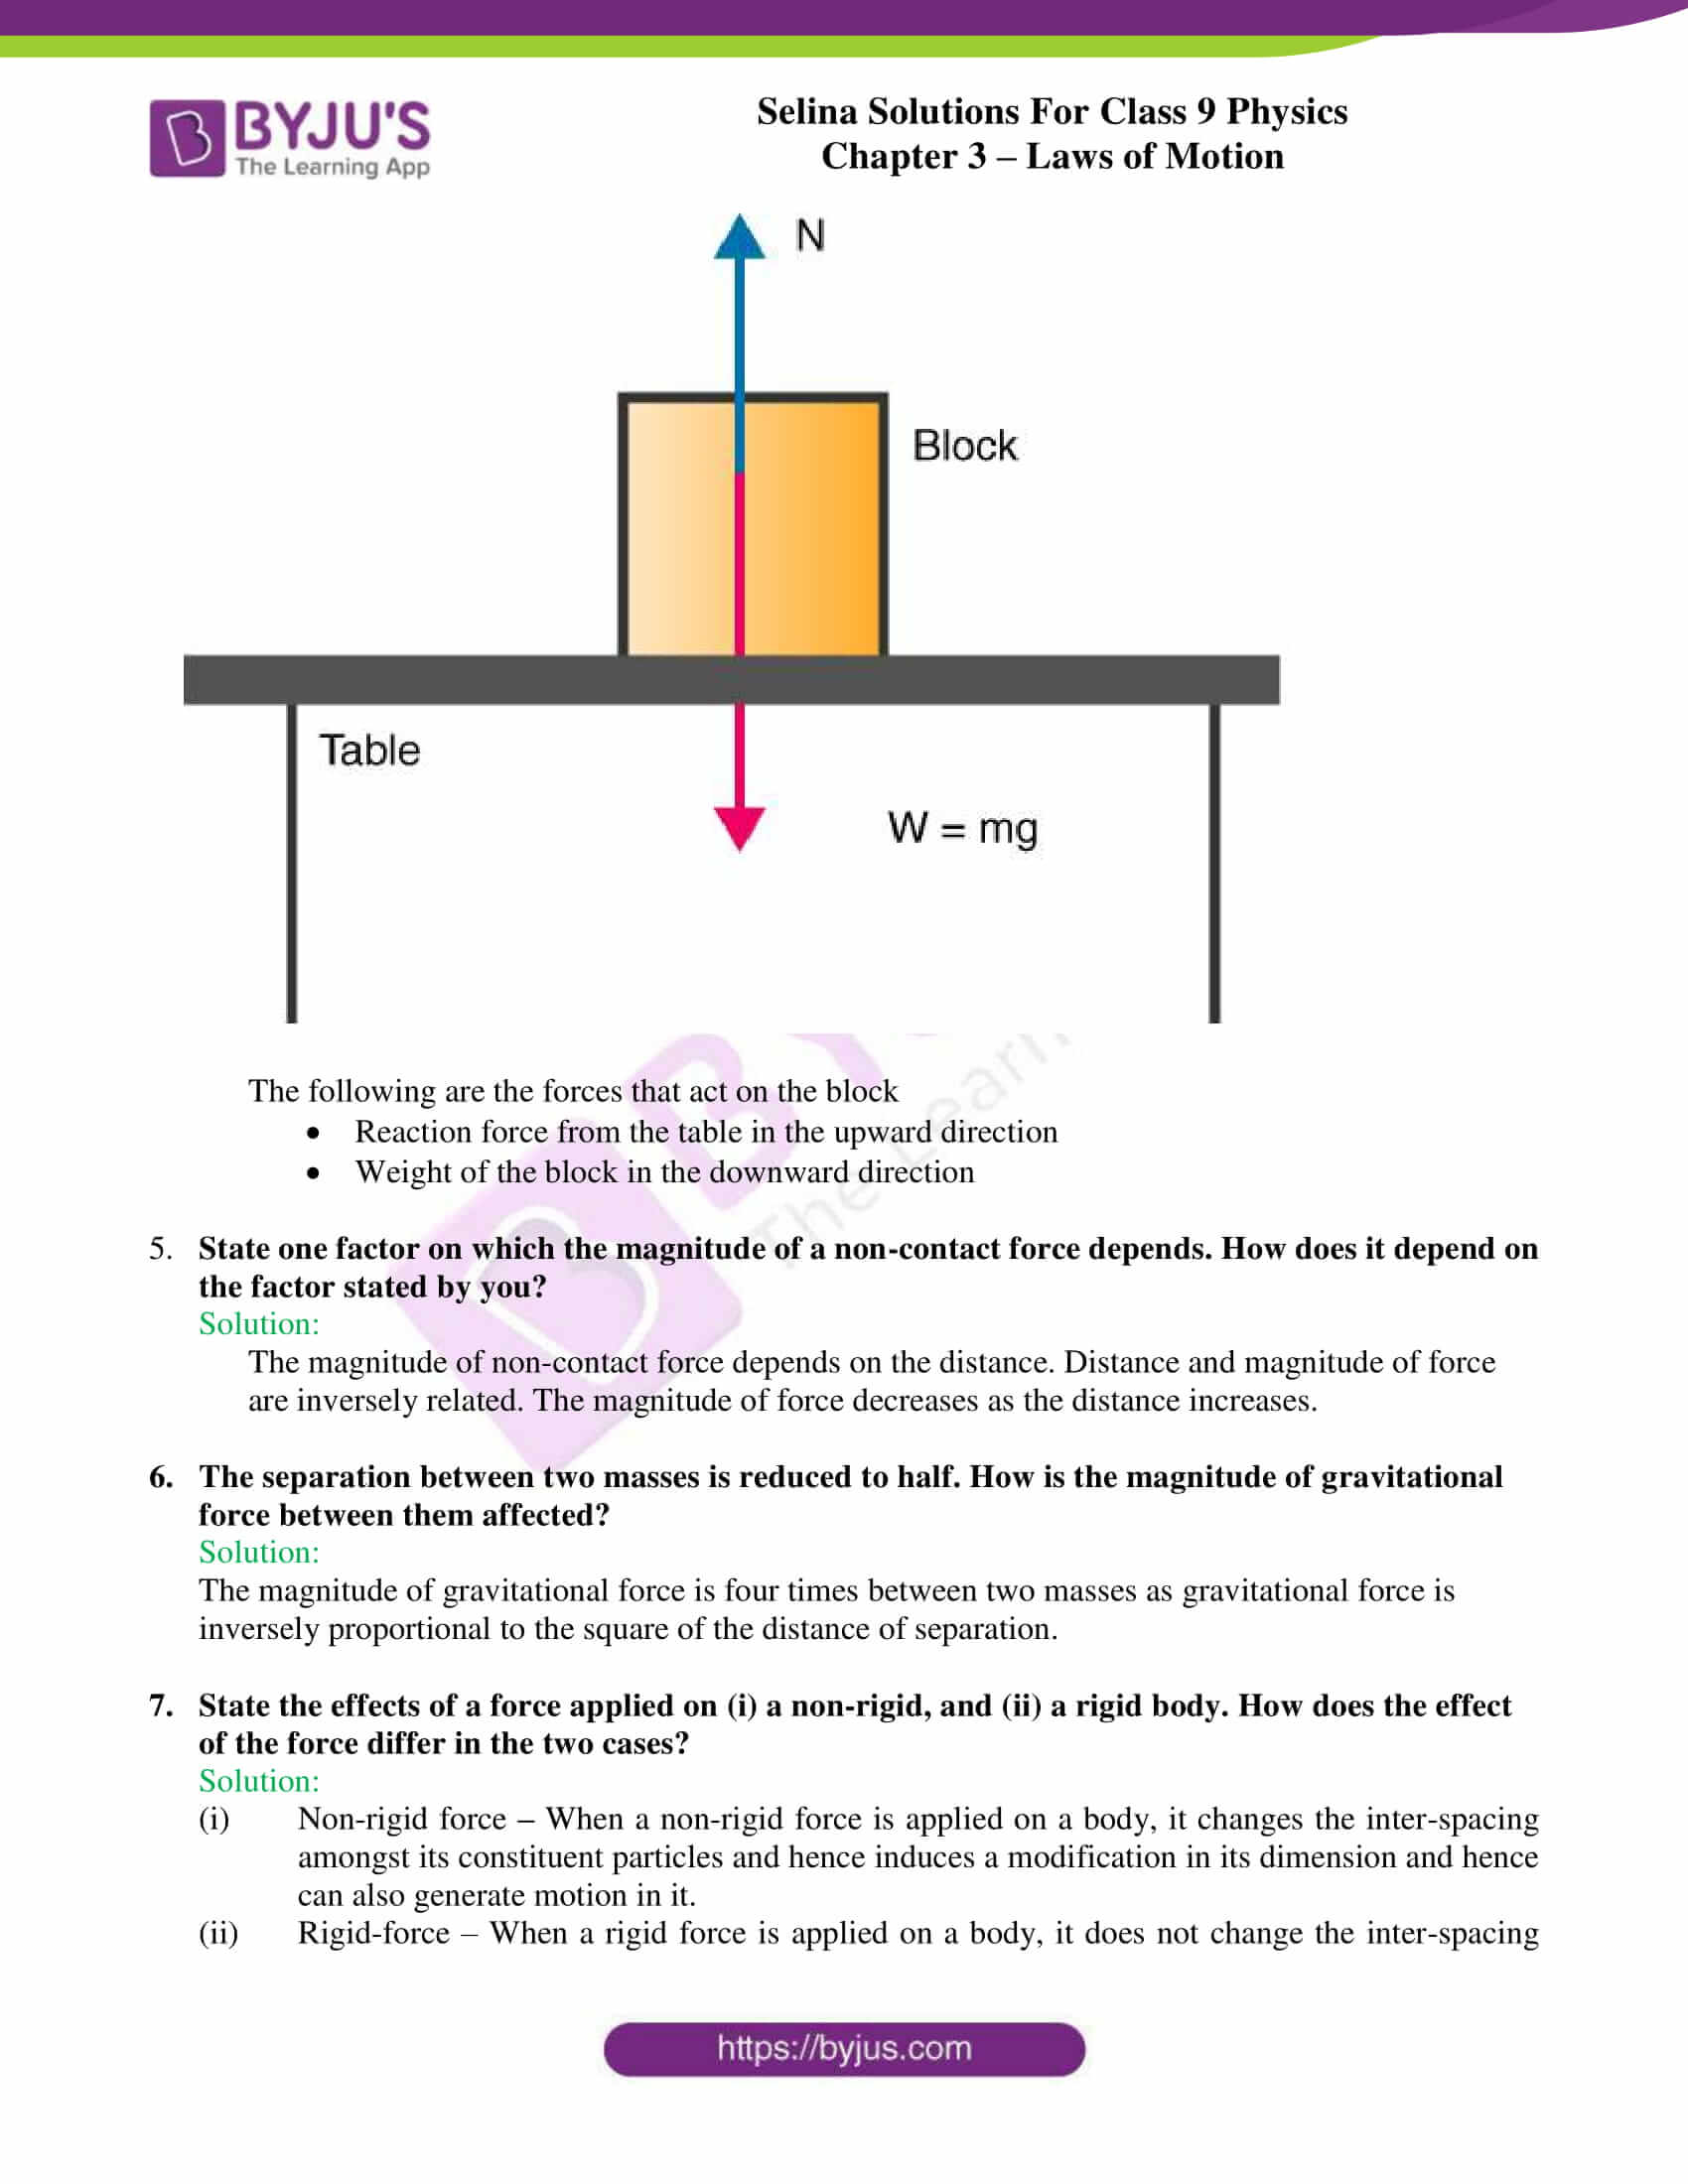 selina solutions class 9 physics chapter 3 Laws of Motion part 03